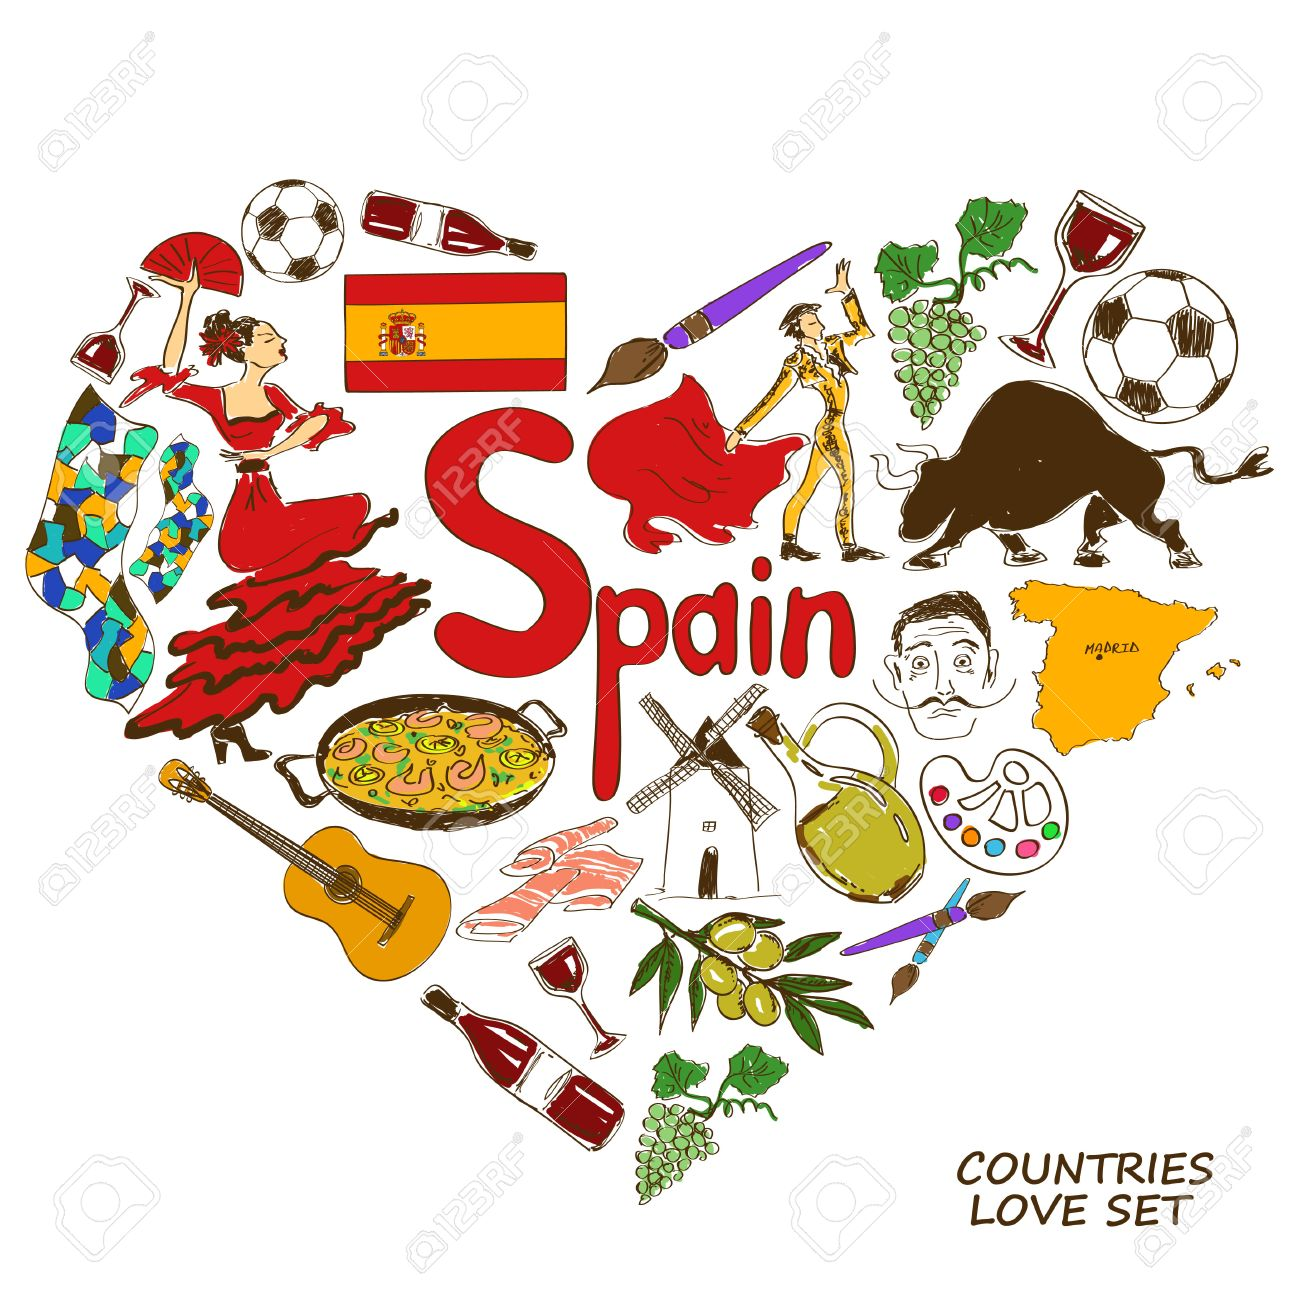 44548 Spain Cliparts Stock Vector And Royalty Free Spain Illustrations